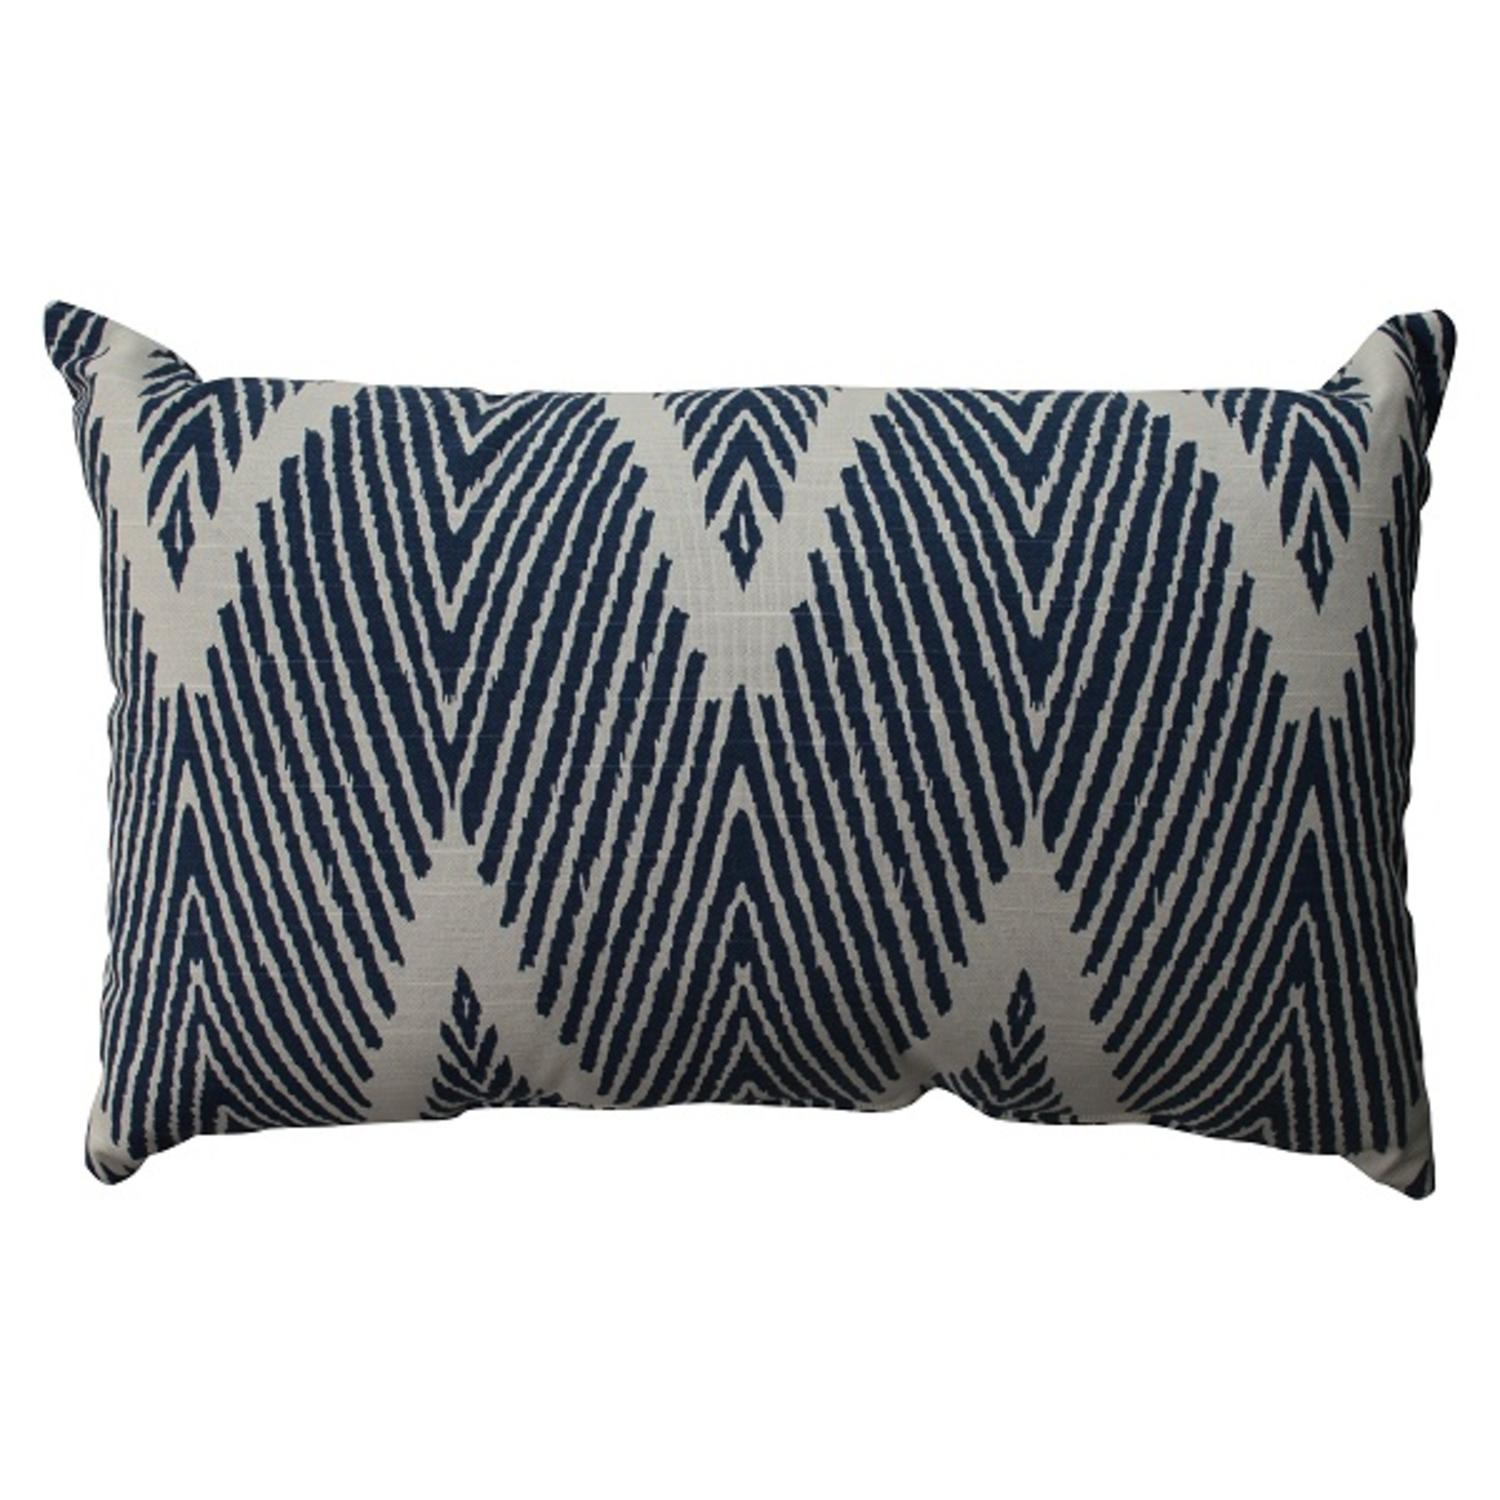 "18.5"" Navy Zig Zag Zebra Print Decorative Rectangular Throw Pillow"